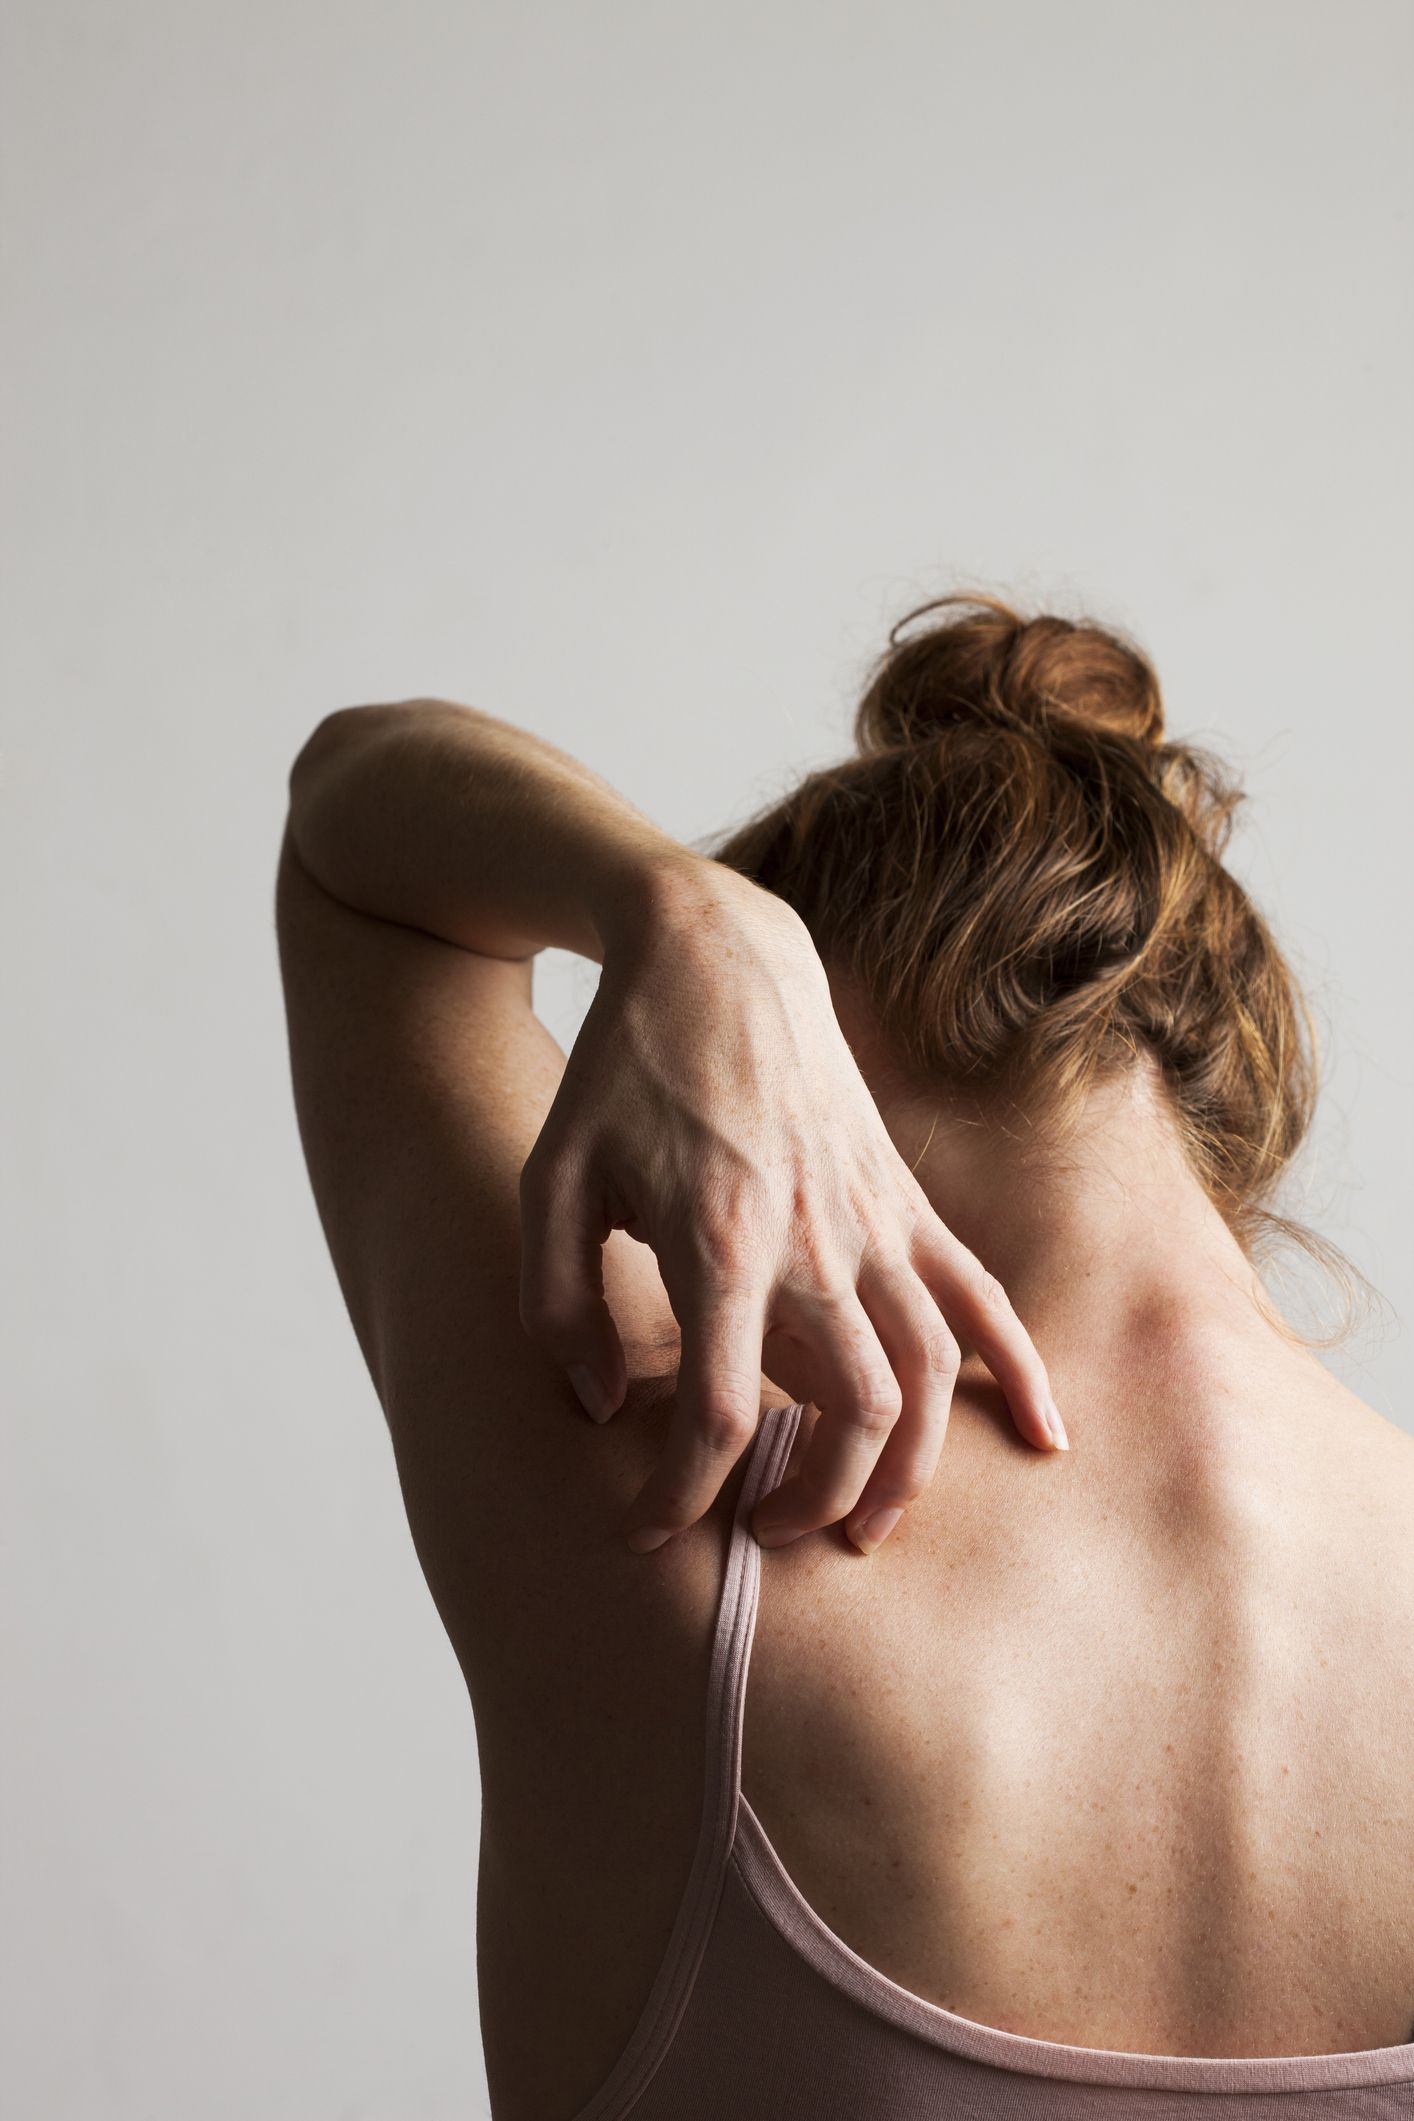 Itchy back: 10 causes, symptoms and treatment